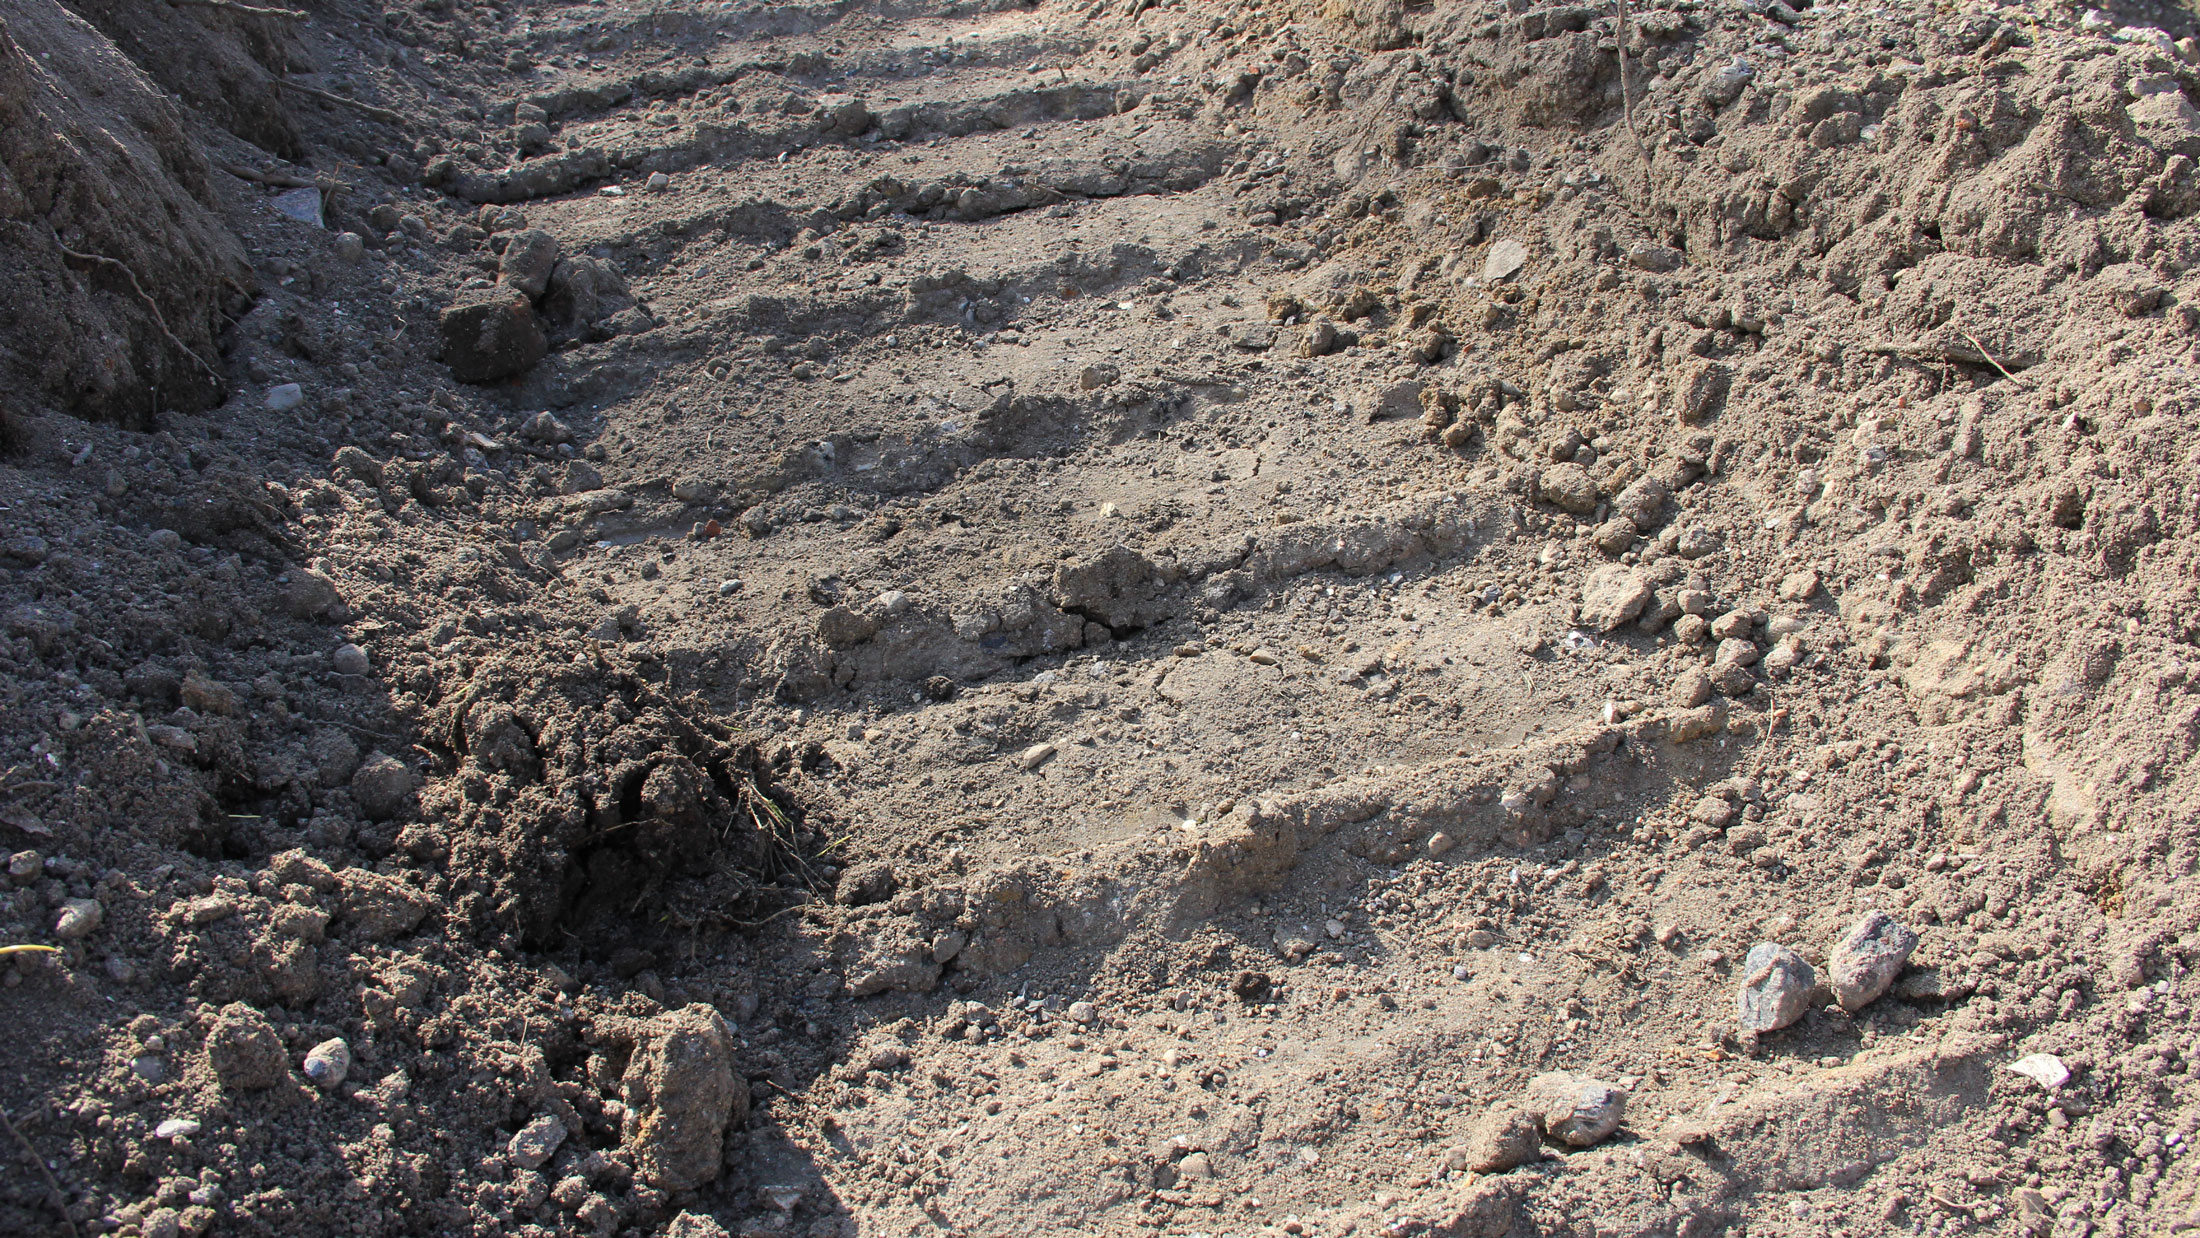 Track left behind from an excavator.